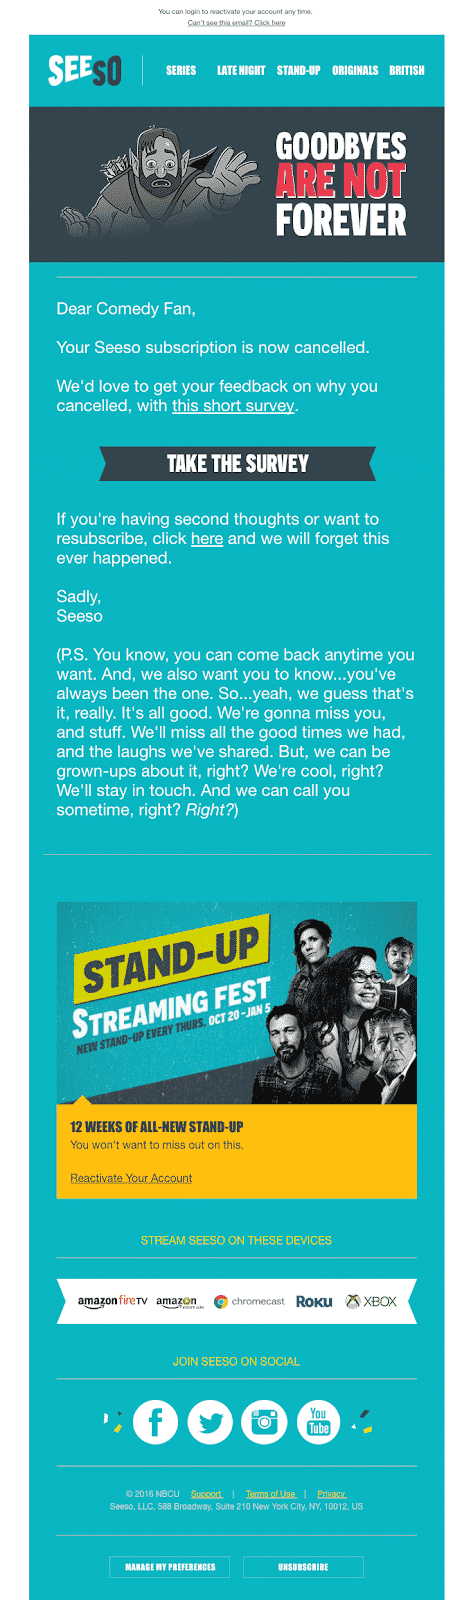 Exit email from Seeso